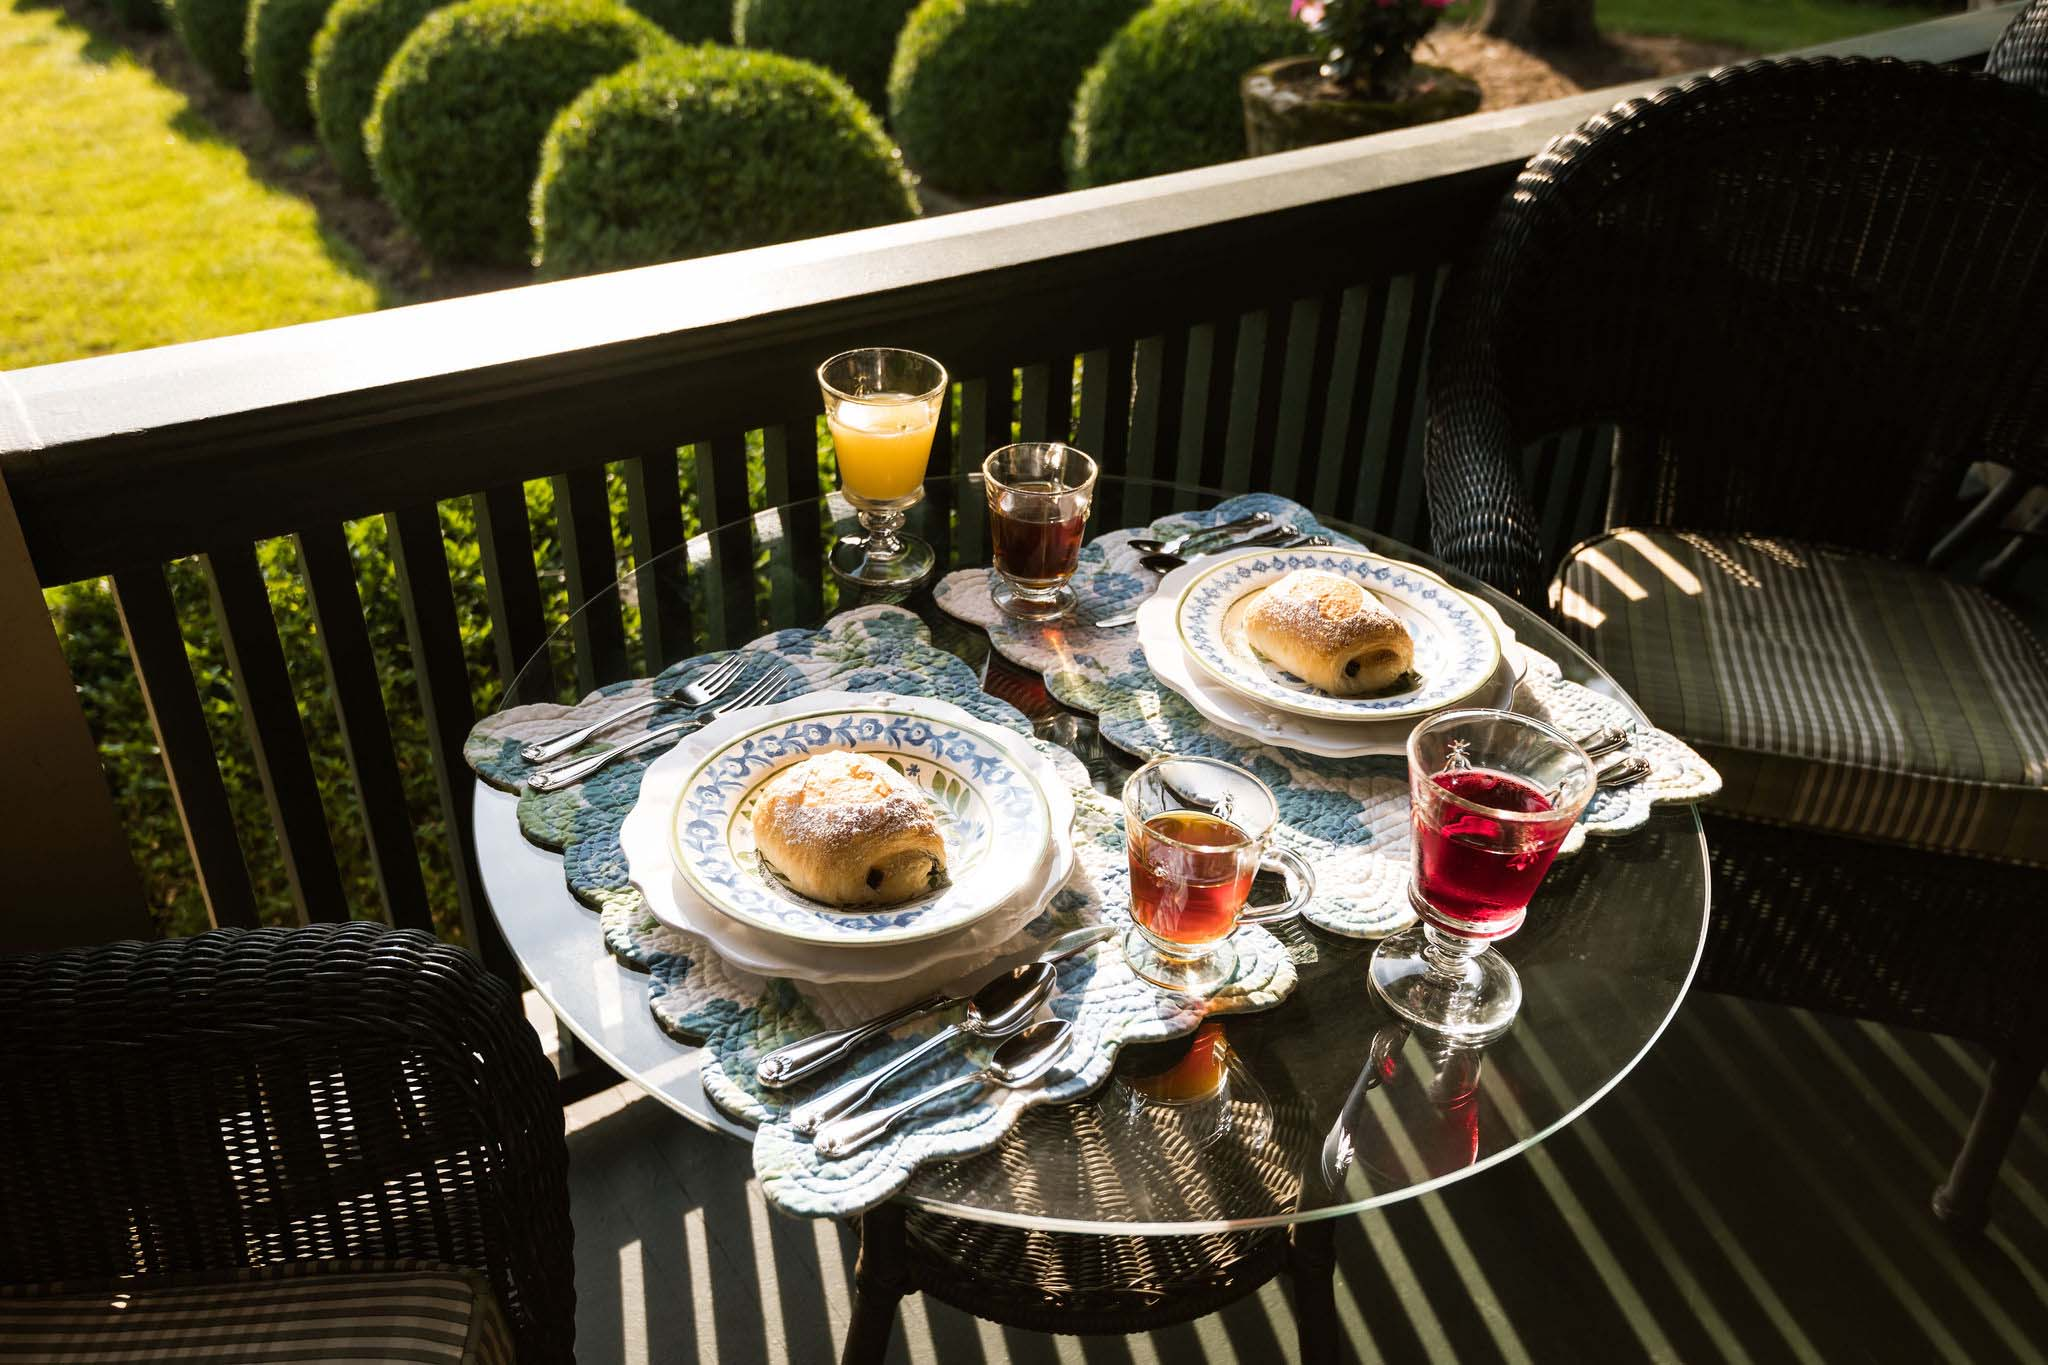 Breakfast served on the porch. A table for two with floral placemats with ceramic dishes and cuttlery, two glasses of juice, two glasses of tea and two home-baked buns.